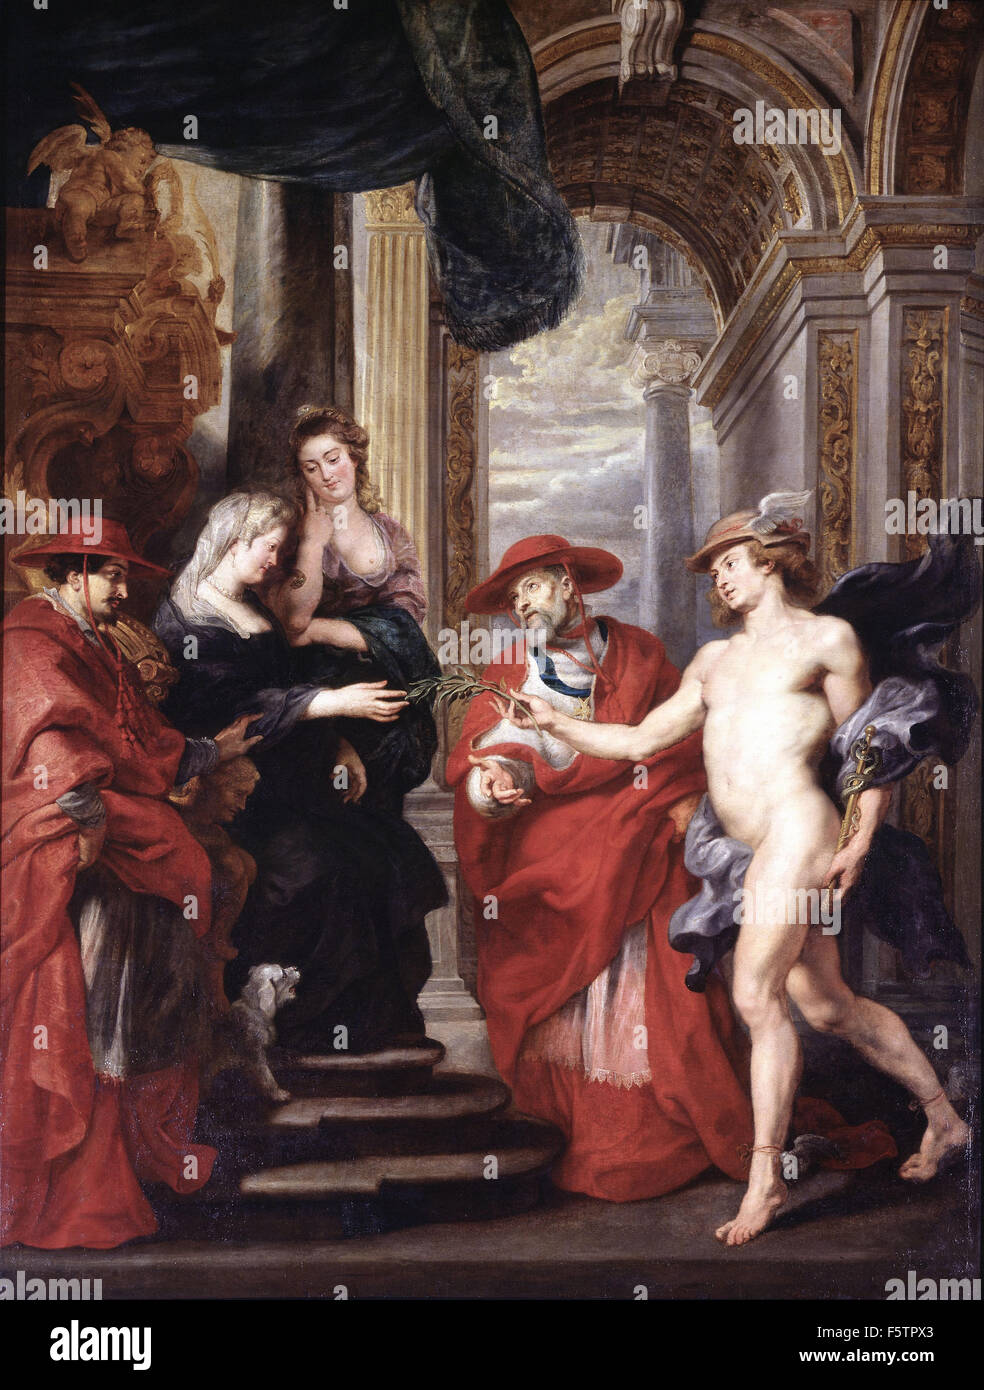 Peter Paul Rubens - The Reconciliation of Marie de Medici with her Son Louis XIII - Stock Image